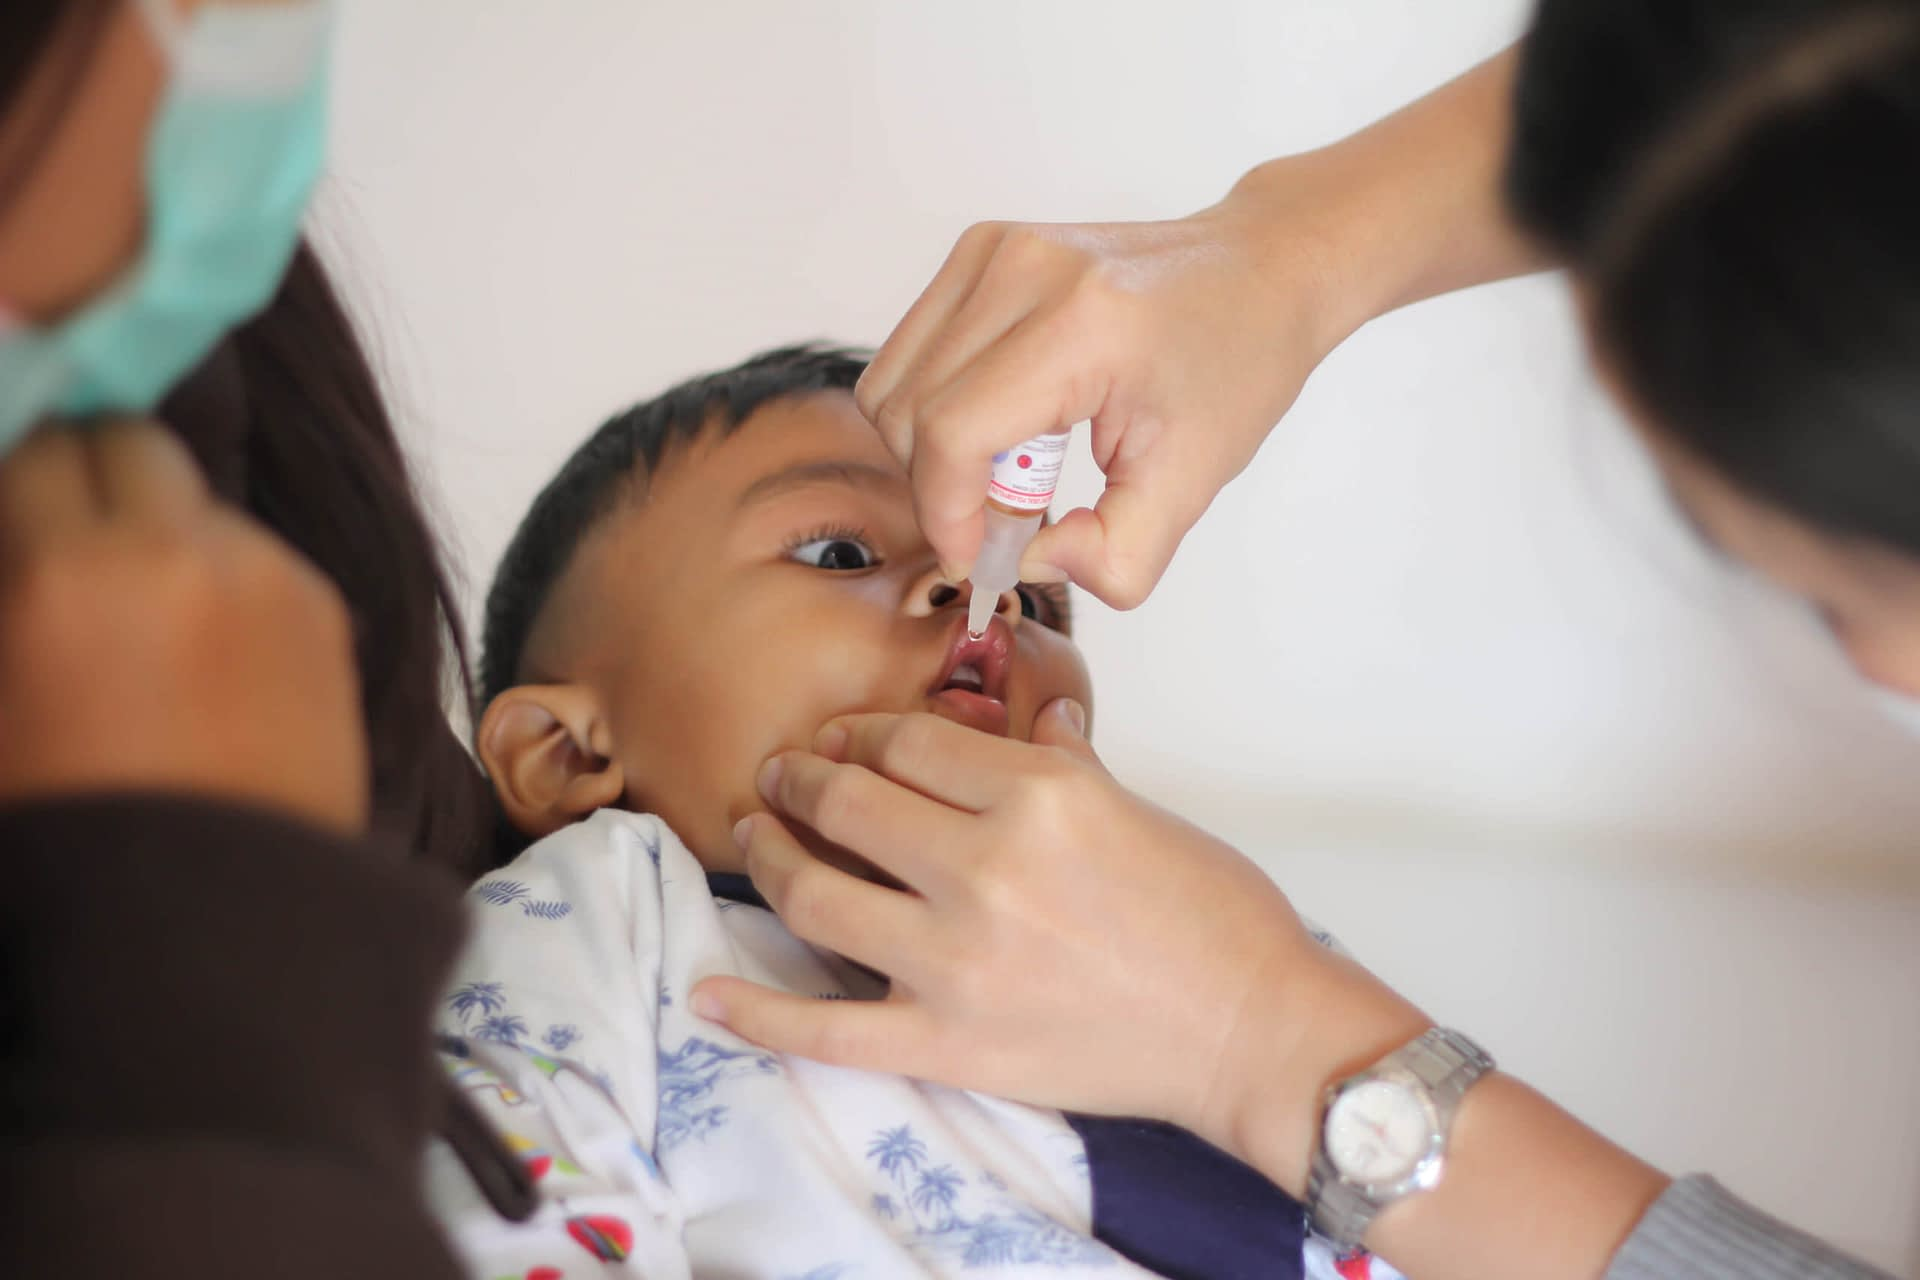 International Implementing Agency Identifies Key Enablers and Barriers for Rotavirus Vaccination Immunization (RVVI) Program Through Robust Analysis Tool